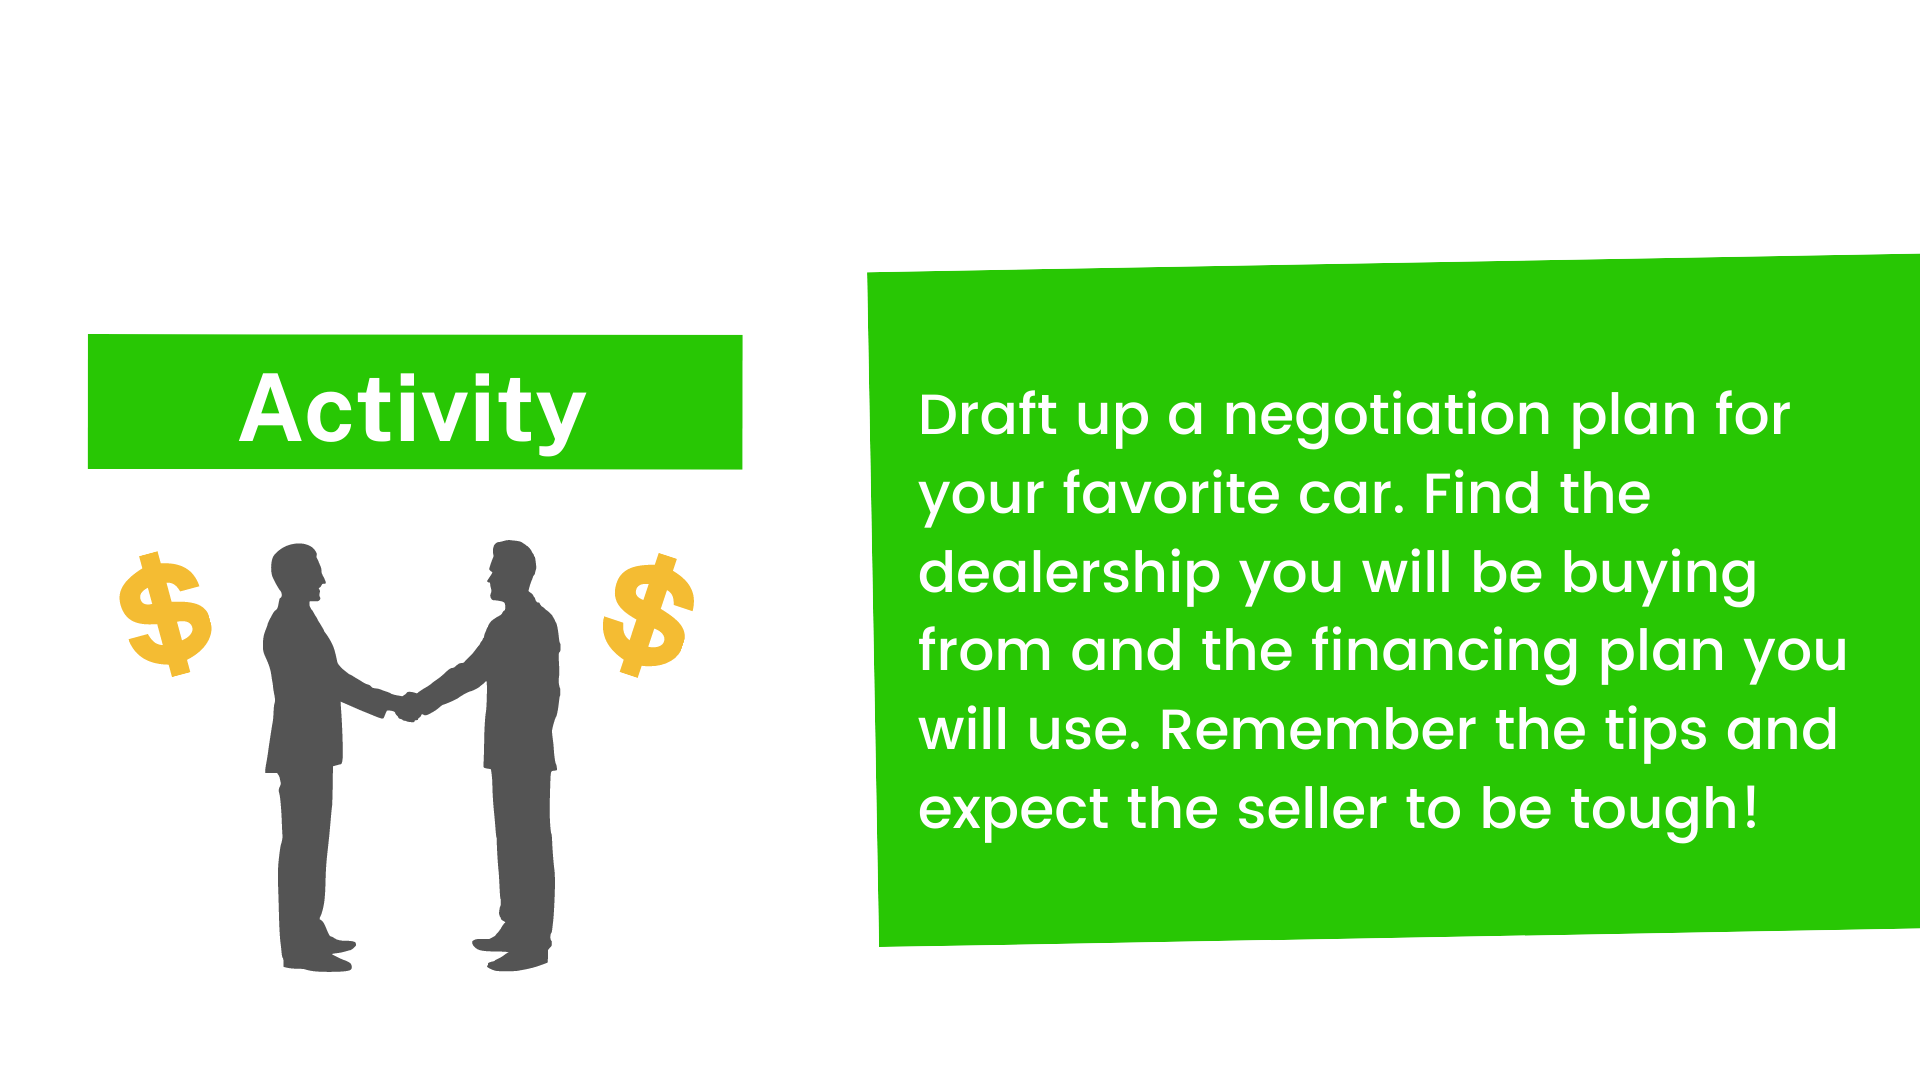 Draft up a negotiation plan for your favorite car. Find the dealership you will be buying from and the financing plan you will use. Remember the tips and expect the seller to be tough!